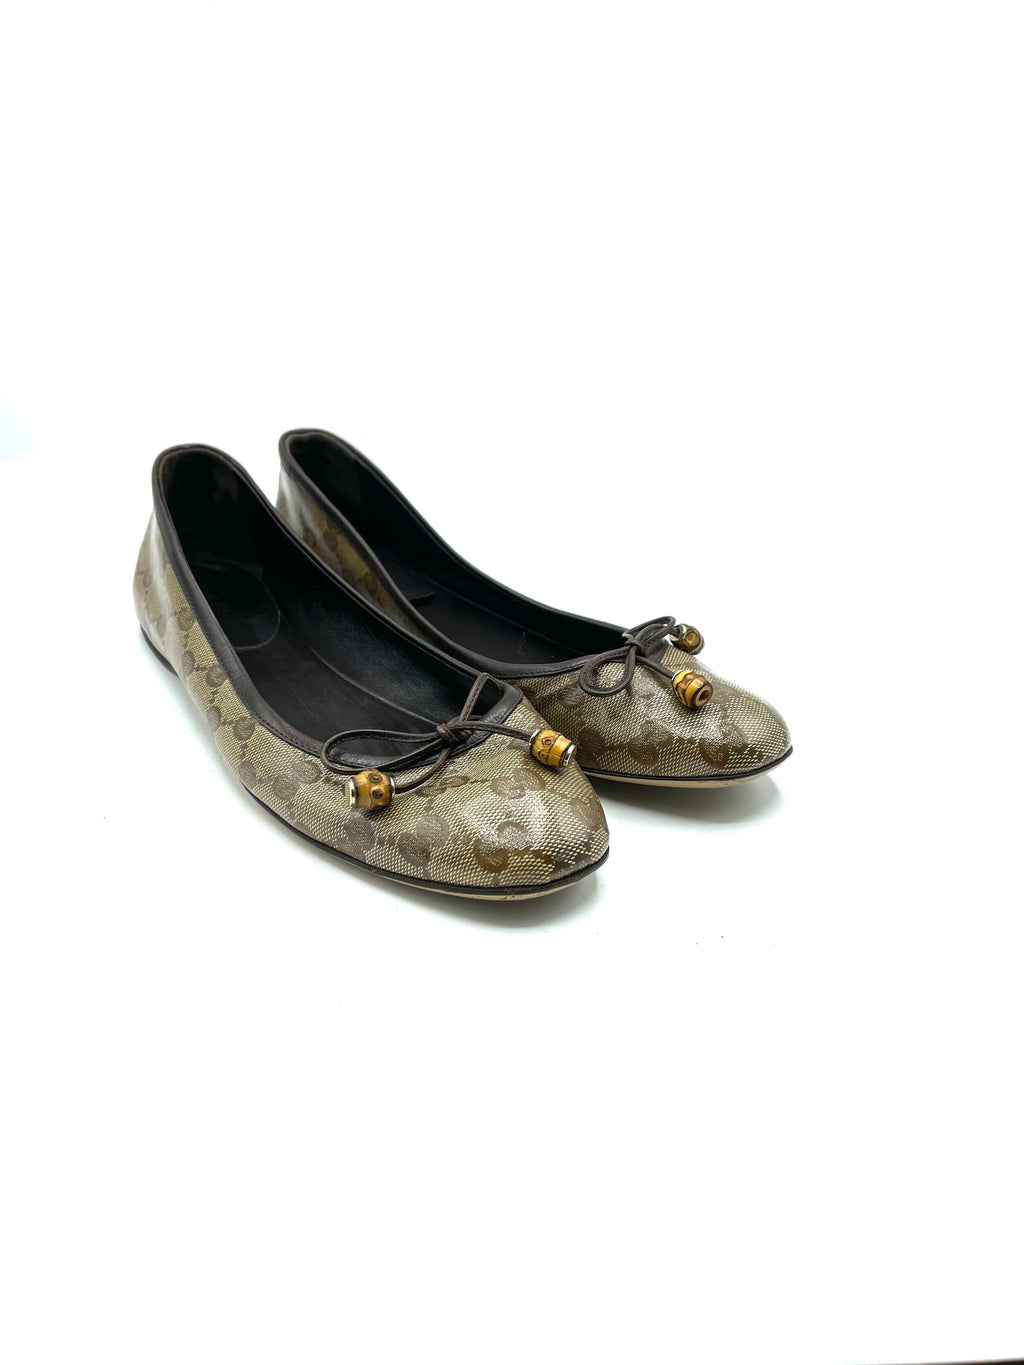 Gucci Early 2000s Logo Ballet Flat  Shoes SIDE 1 of 6